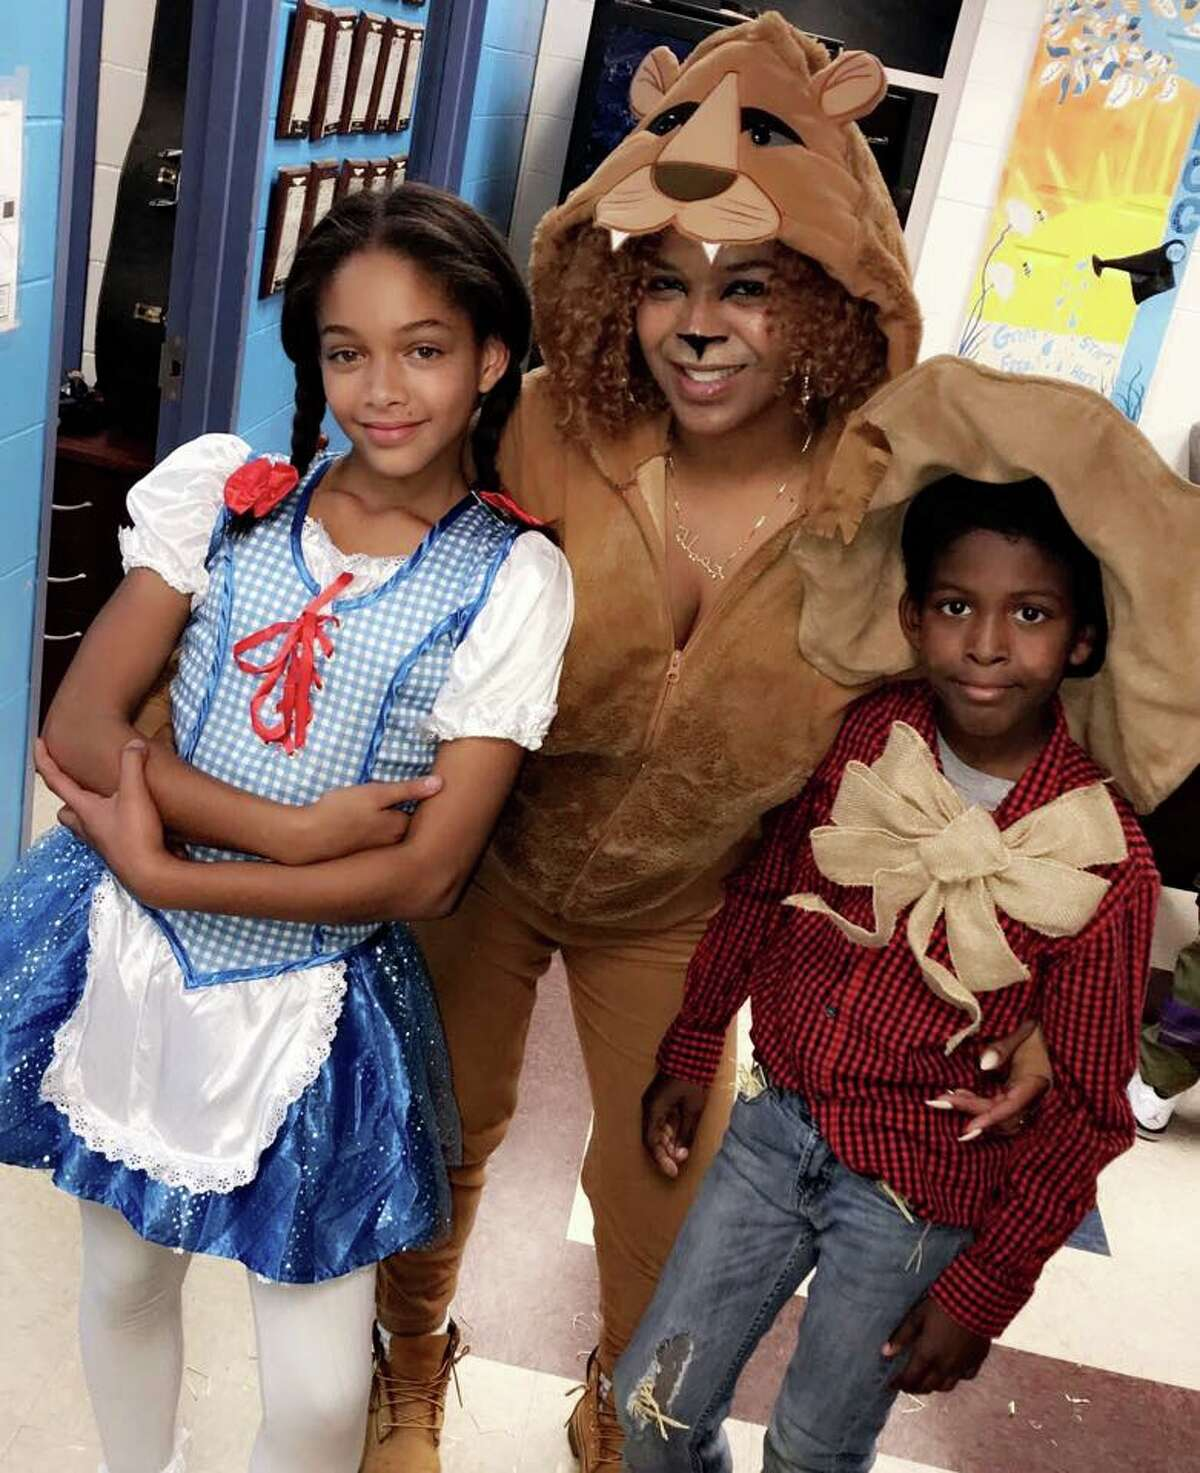 Dailia Yeend and her two children, Taquan and Savannah.